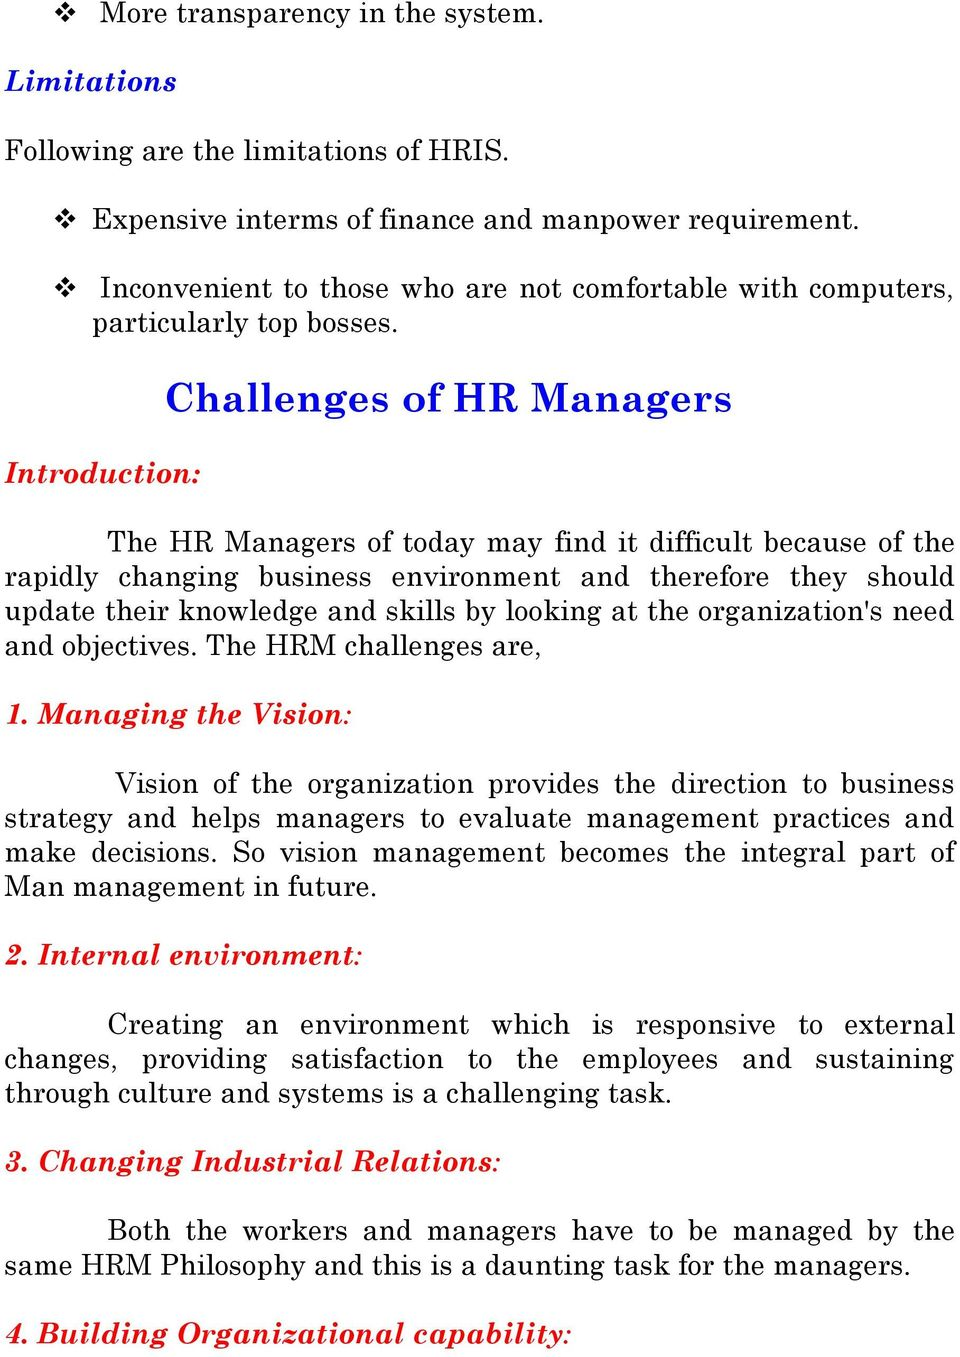 Introduction: Challenges of HR Managers The HR Managers of today may find it difficult because of the rapidly changing business environment and therefore they should update their knowledge and skills